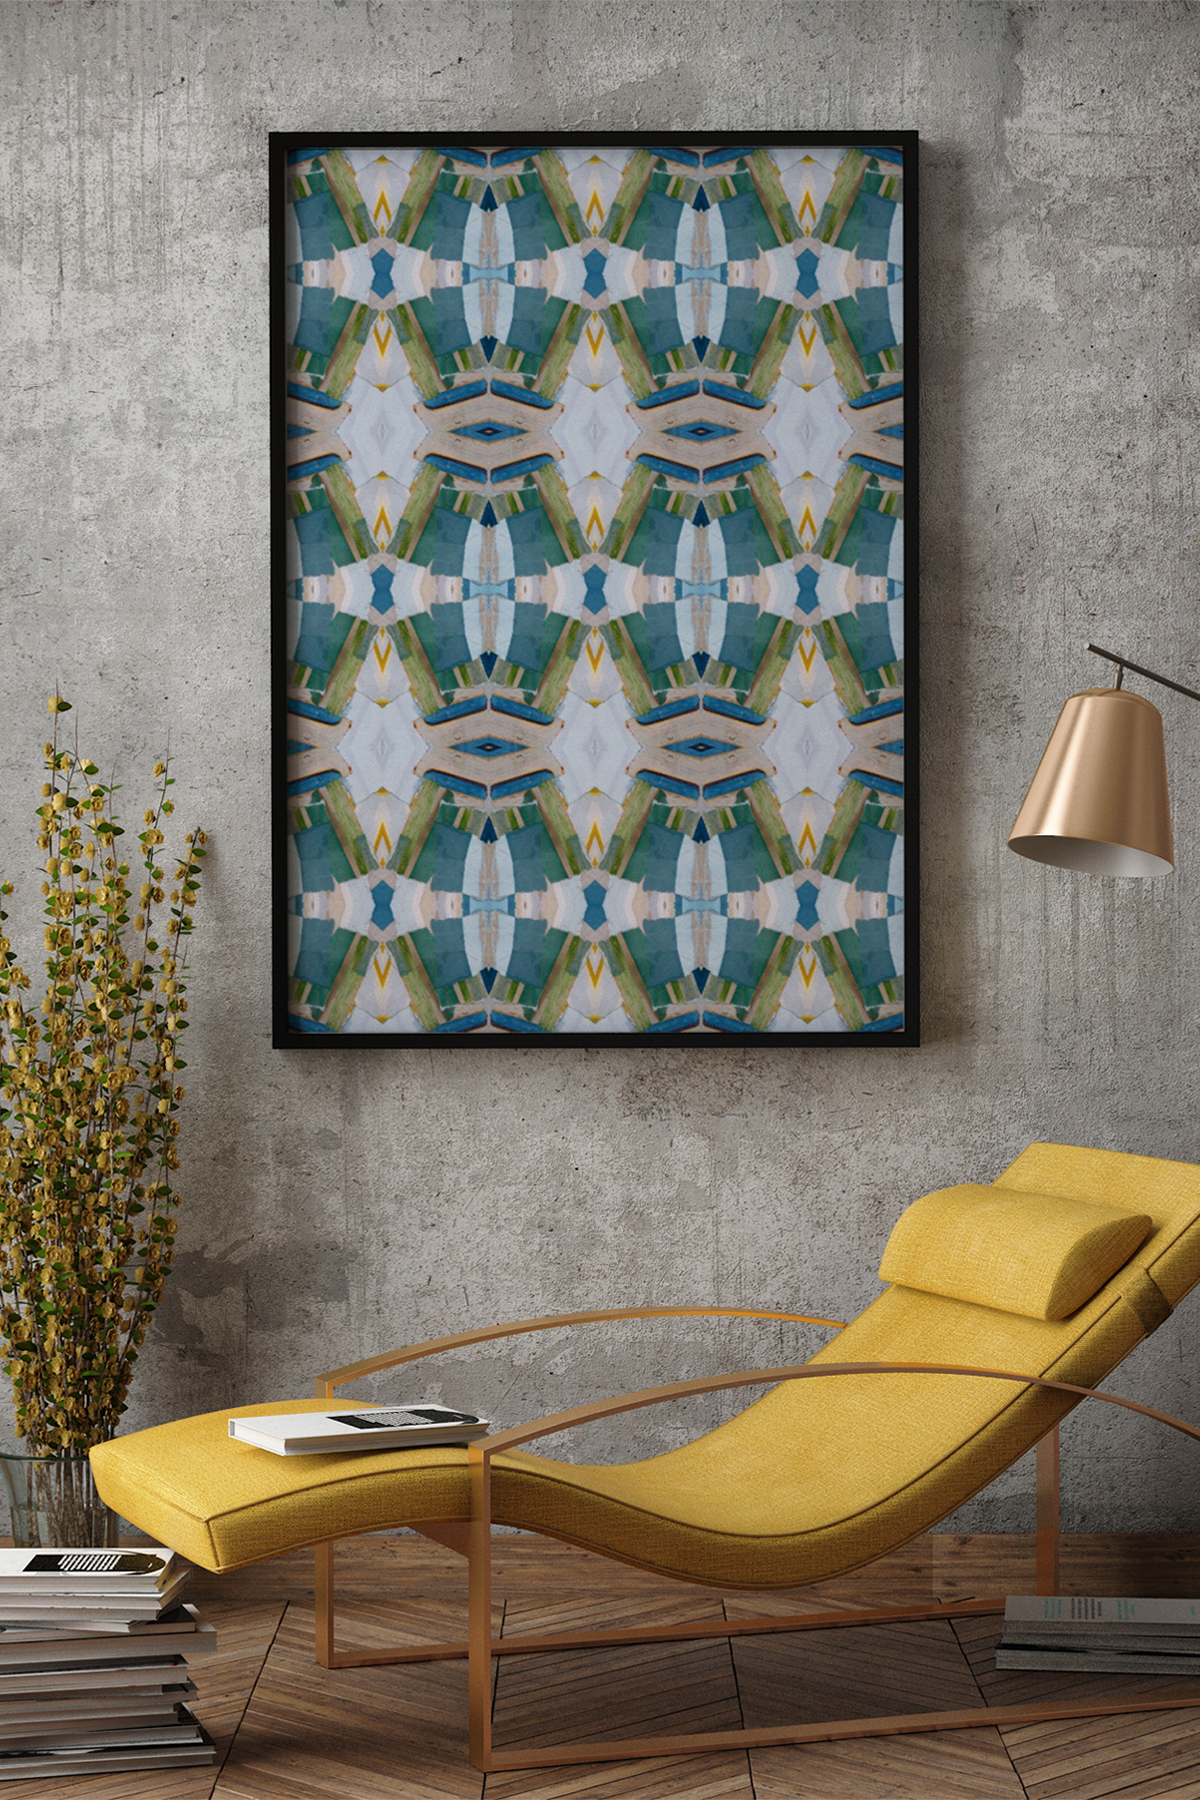 Collage / Surface Pattern Textile Design / Wall Art / Fine Art Print